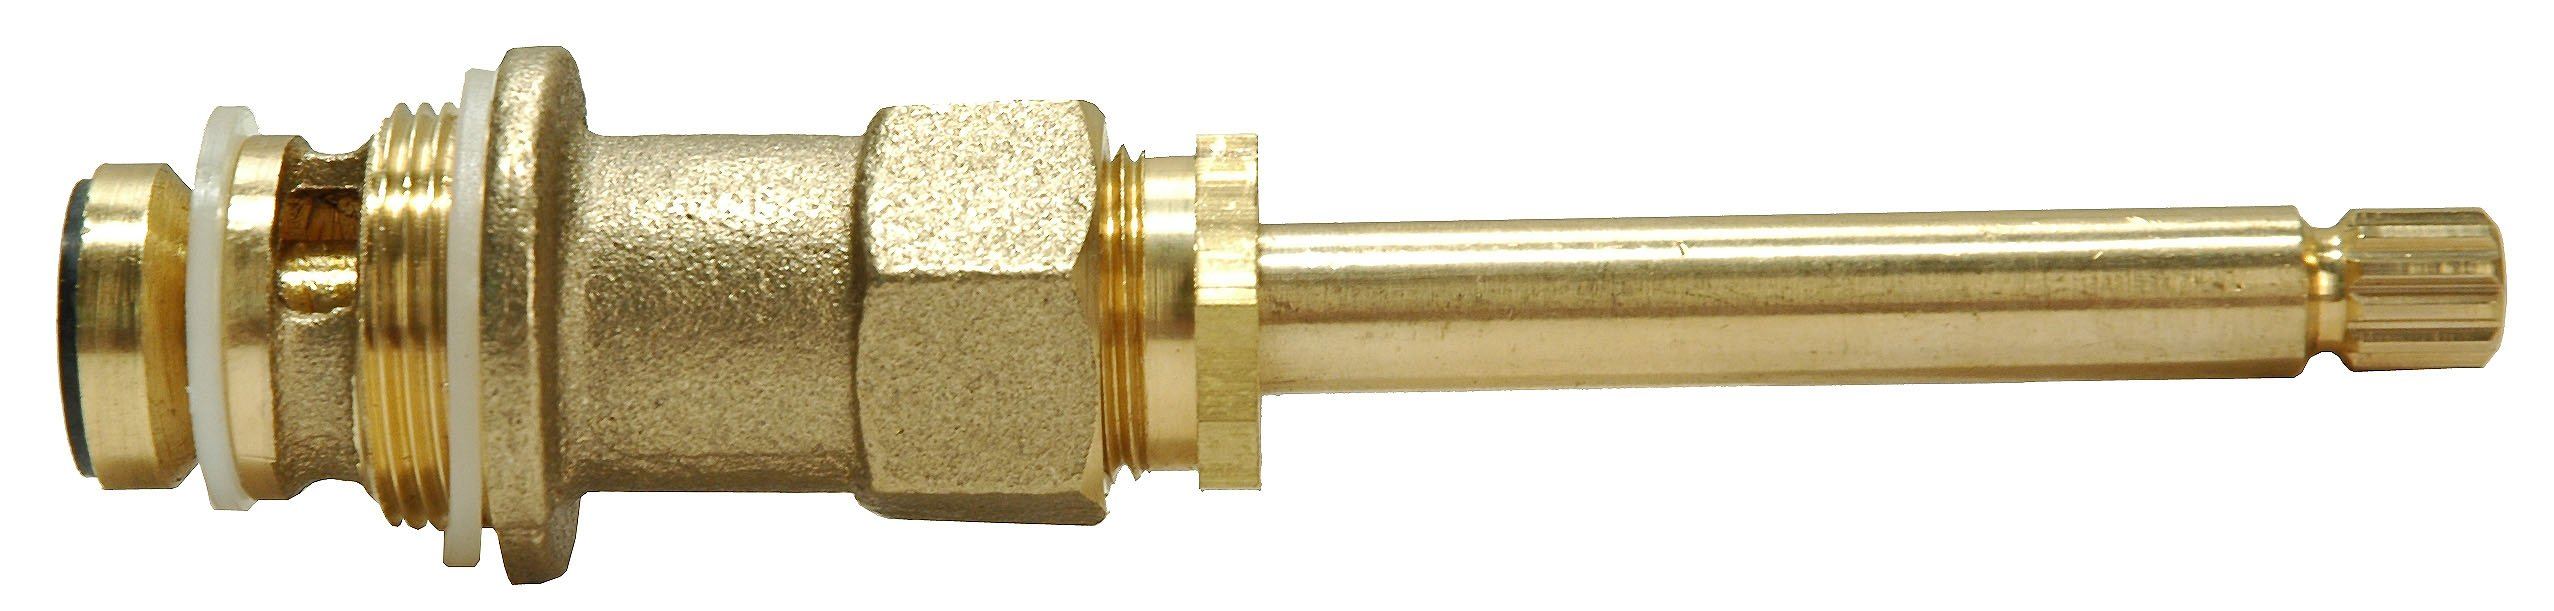 Generic Price Pfister 910-374 Shower Stem, Hot/cold/diverter, Compression Type - By Plumb USA & Faucet888